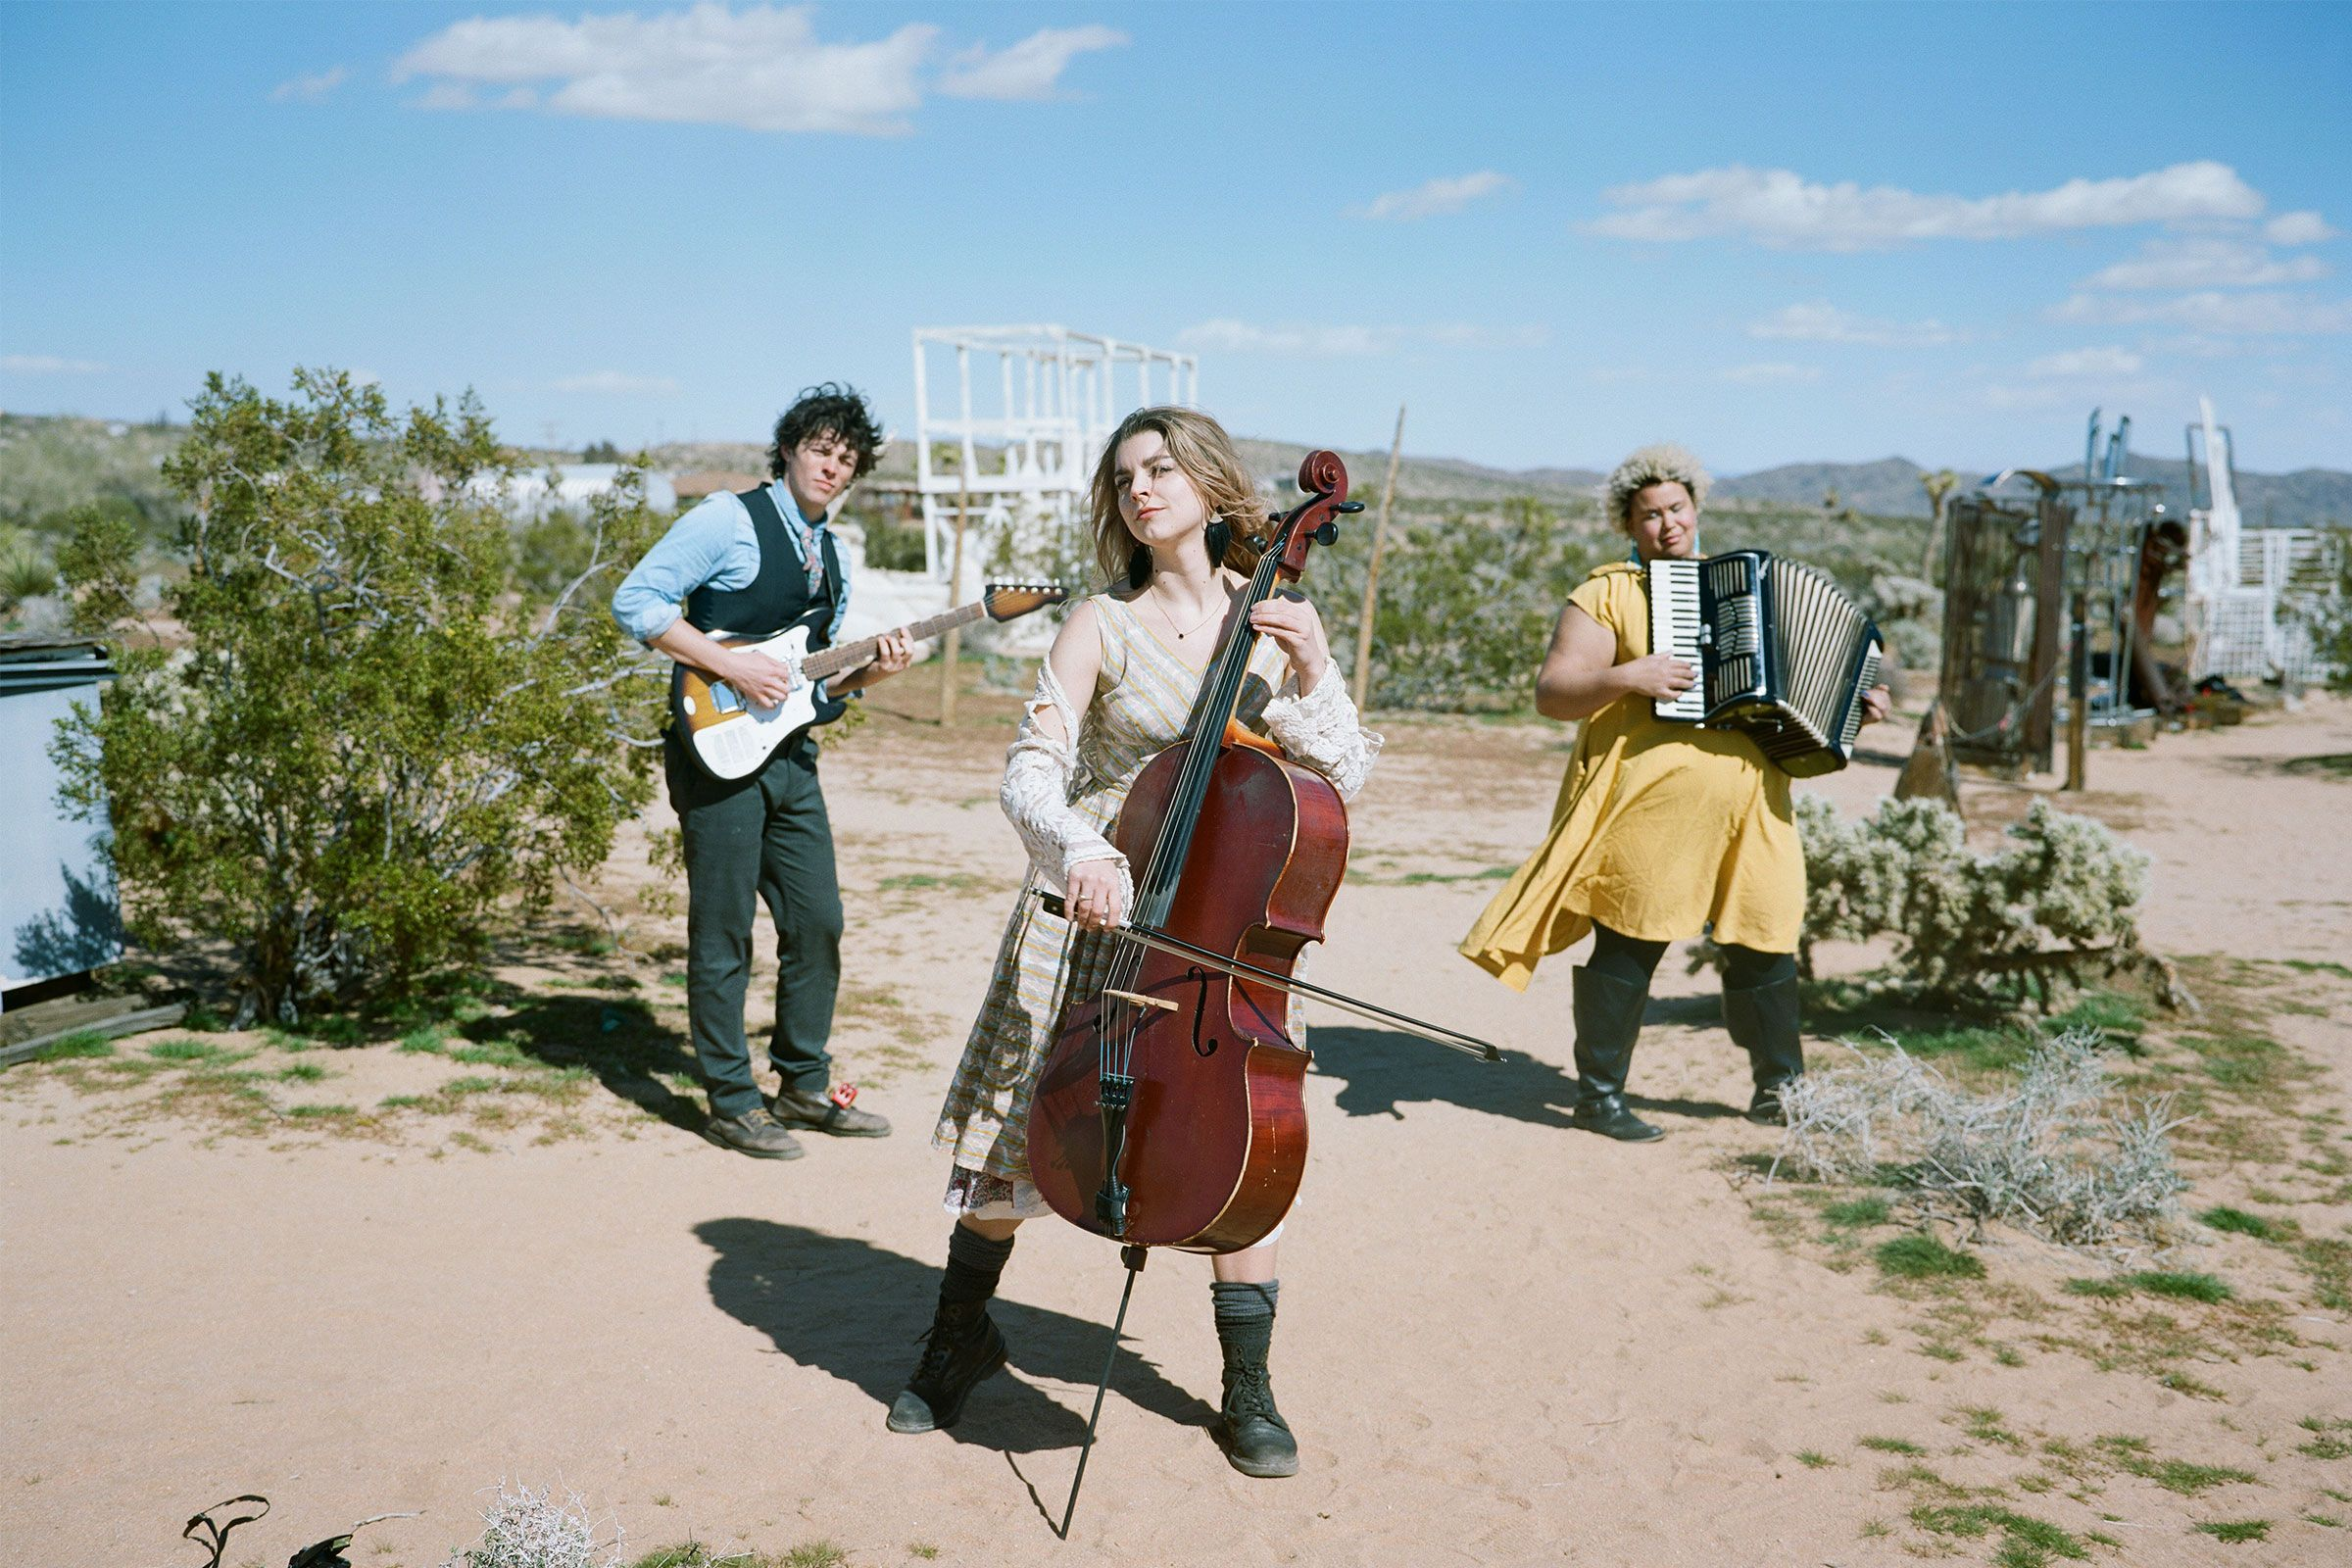 Three people standing in a desert holding instruments. Two people in the background are holing a guitar and accordion, and one woman in the foreground is holding a cello.